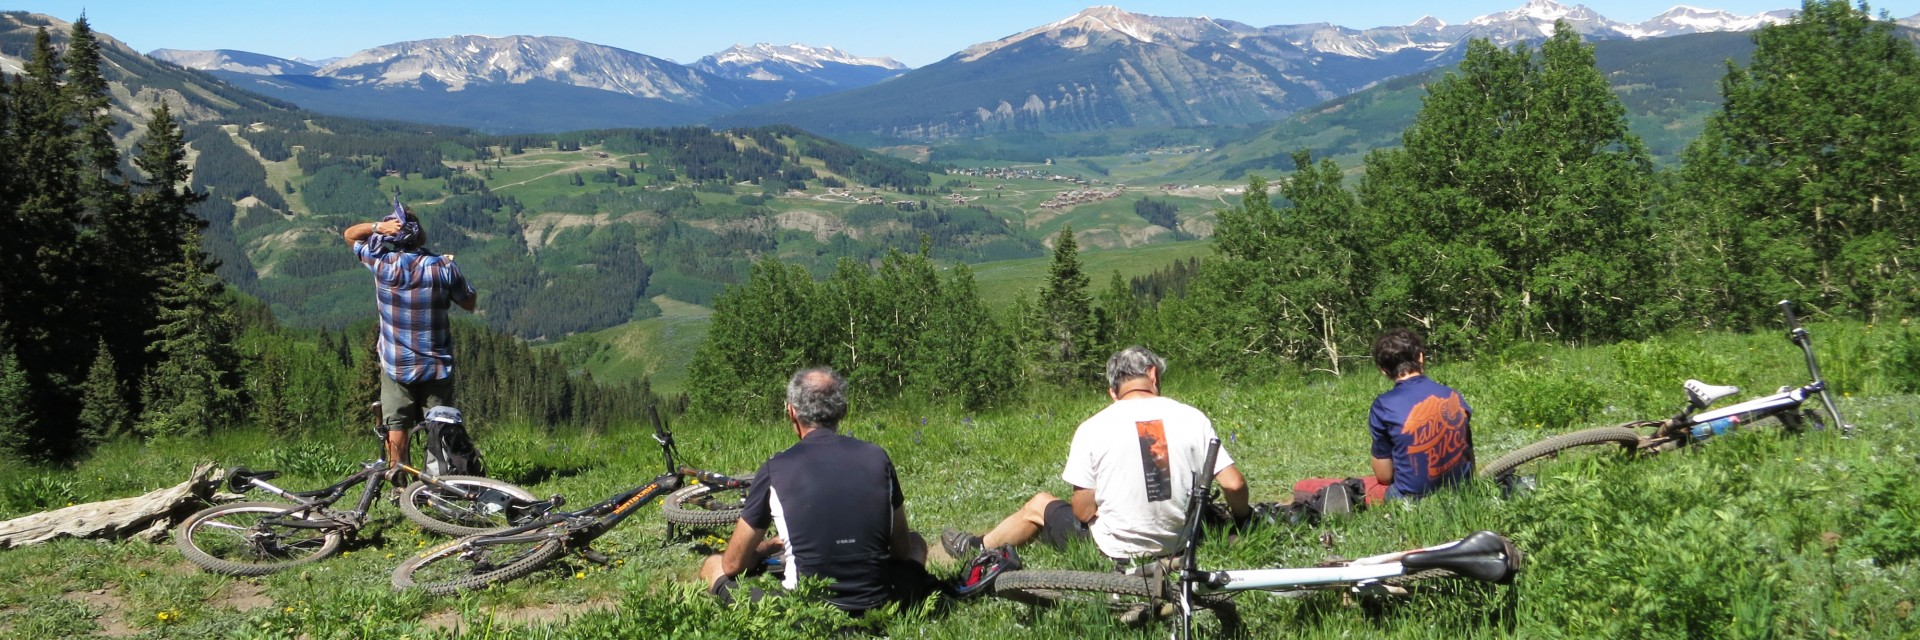 Rest stop in meadow above Crested Butte on the Colorado Trail